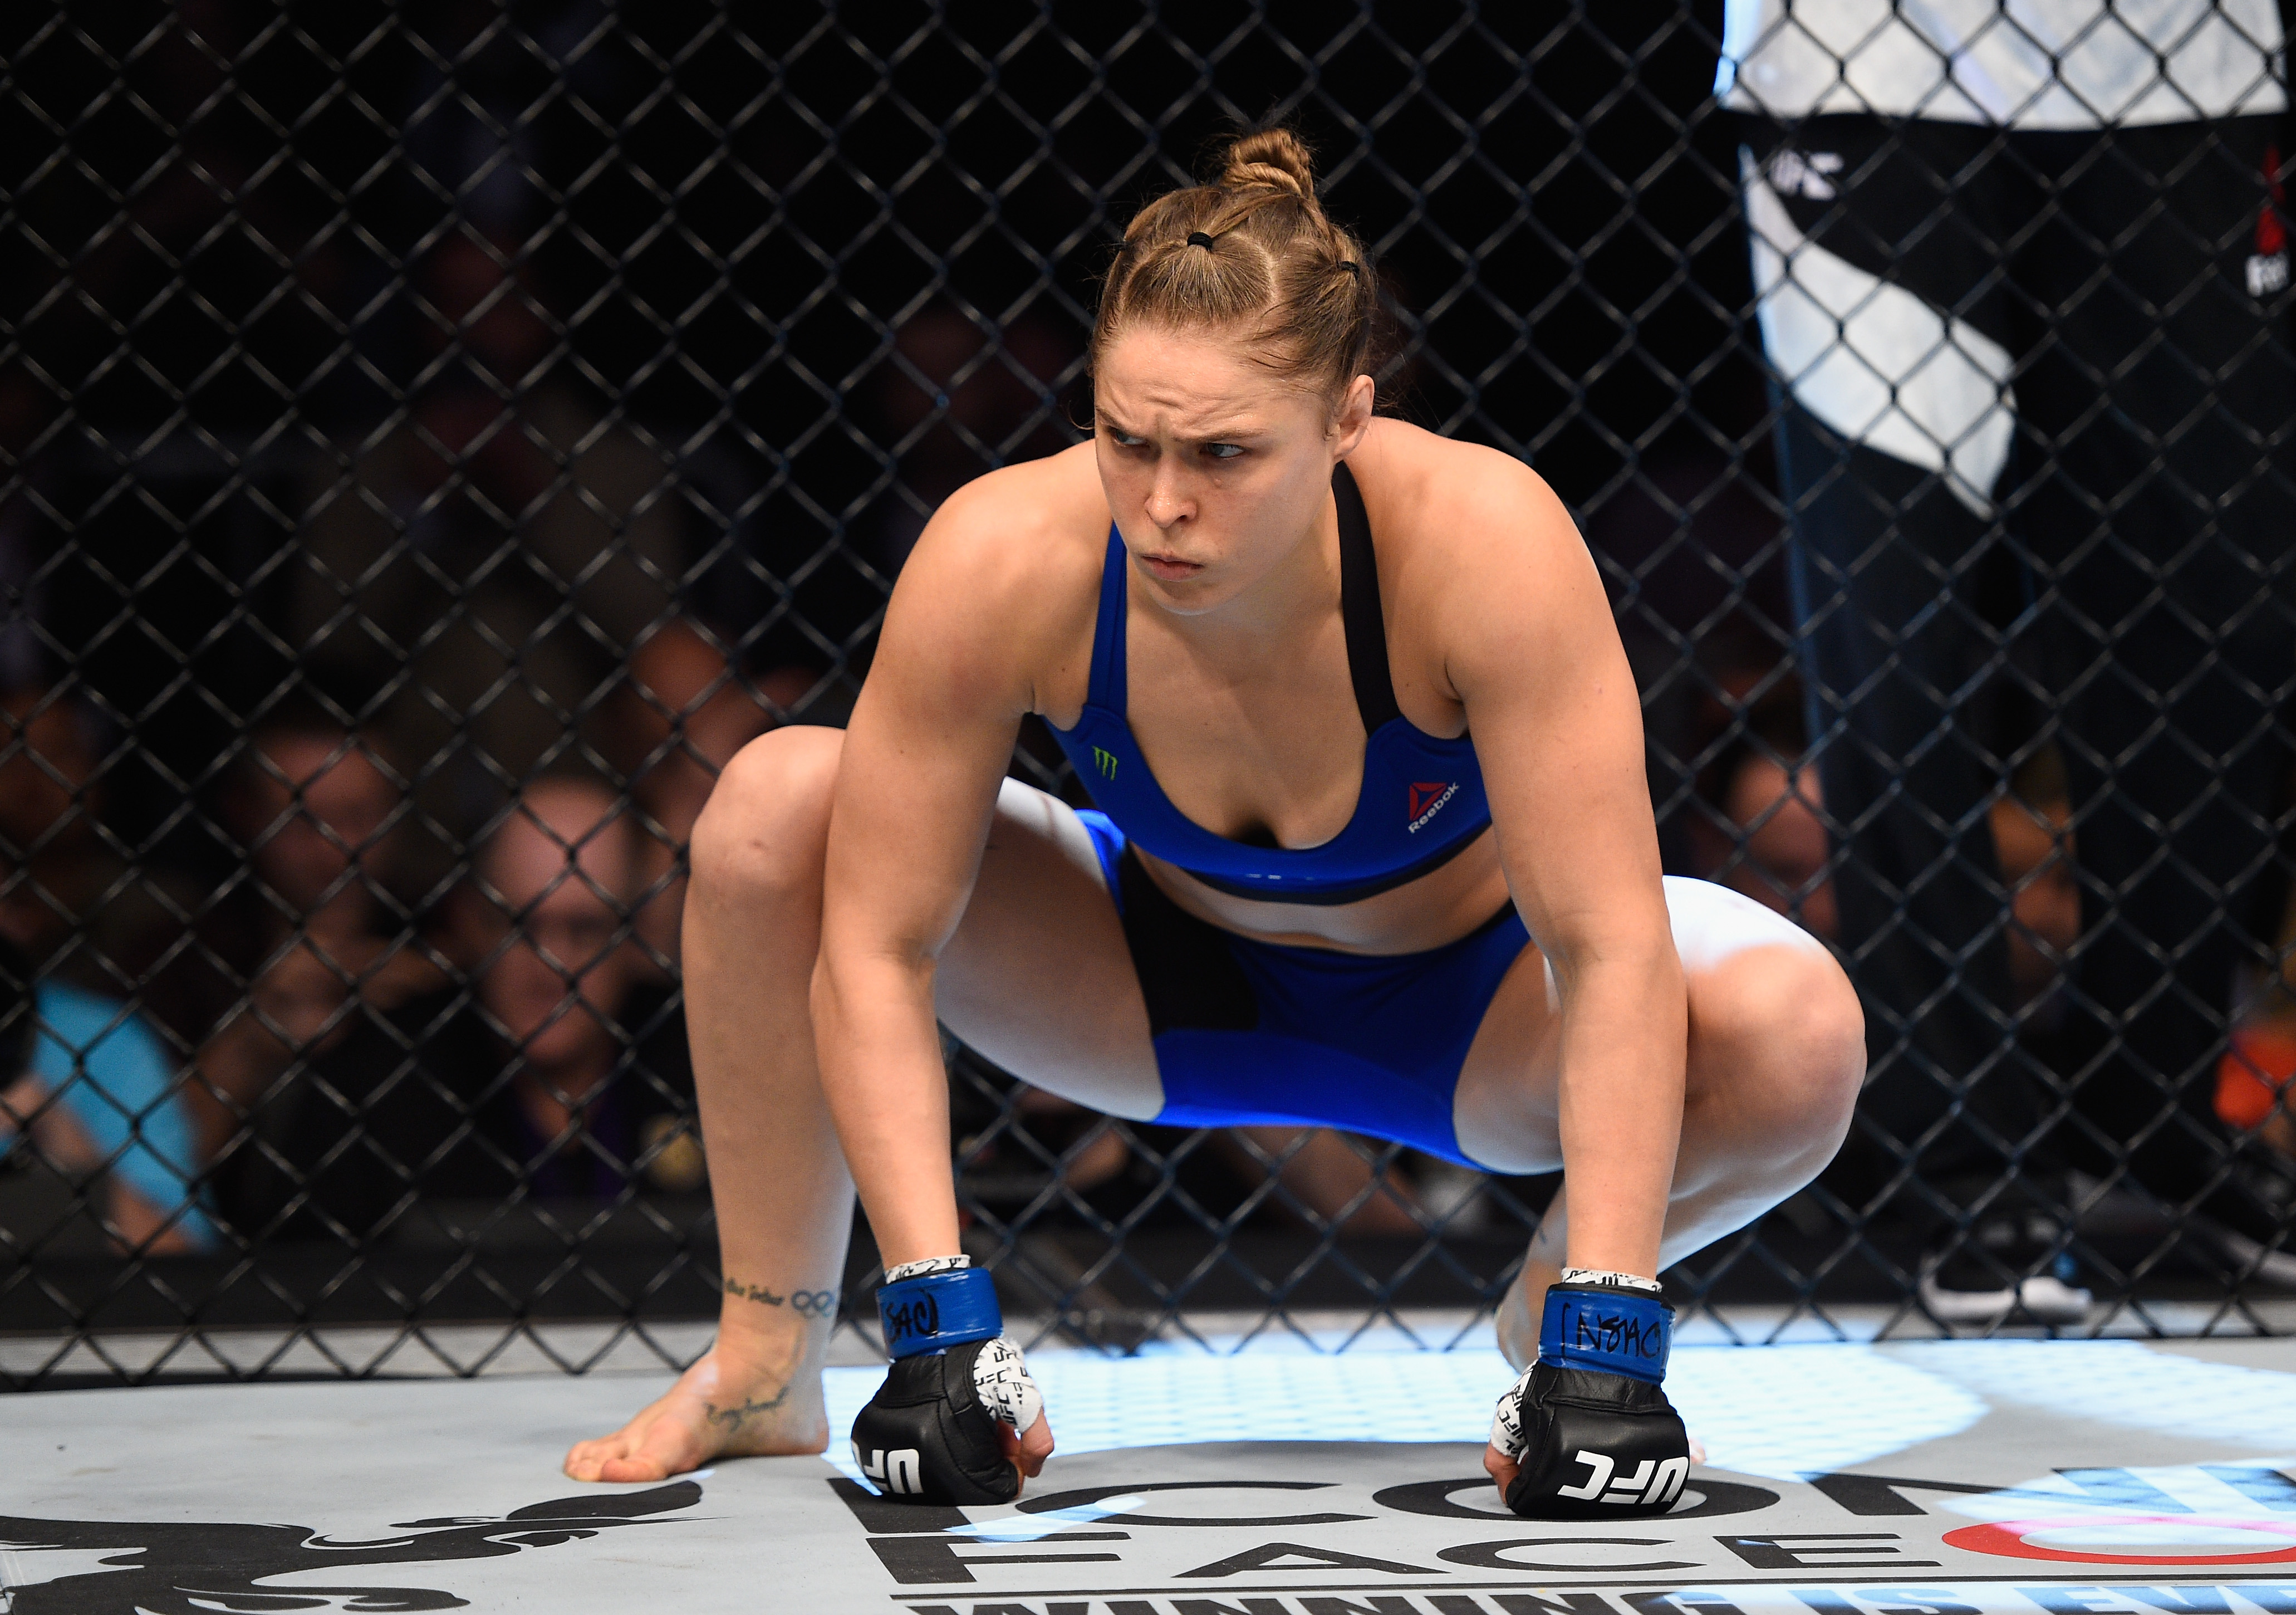 Cris Cryborg's striking coach Jason Parillo says his fighter and Ronda Rousey could train together